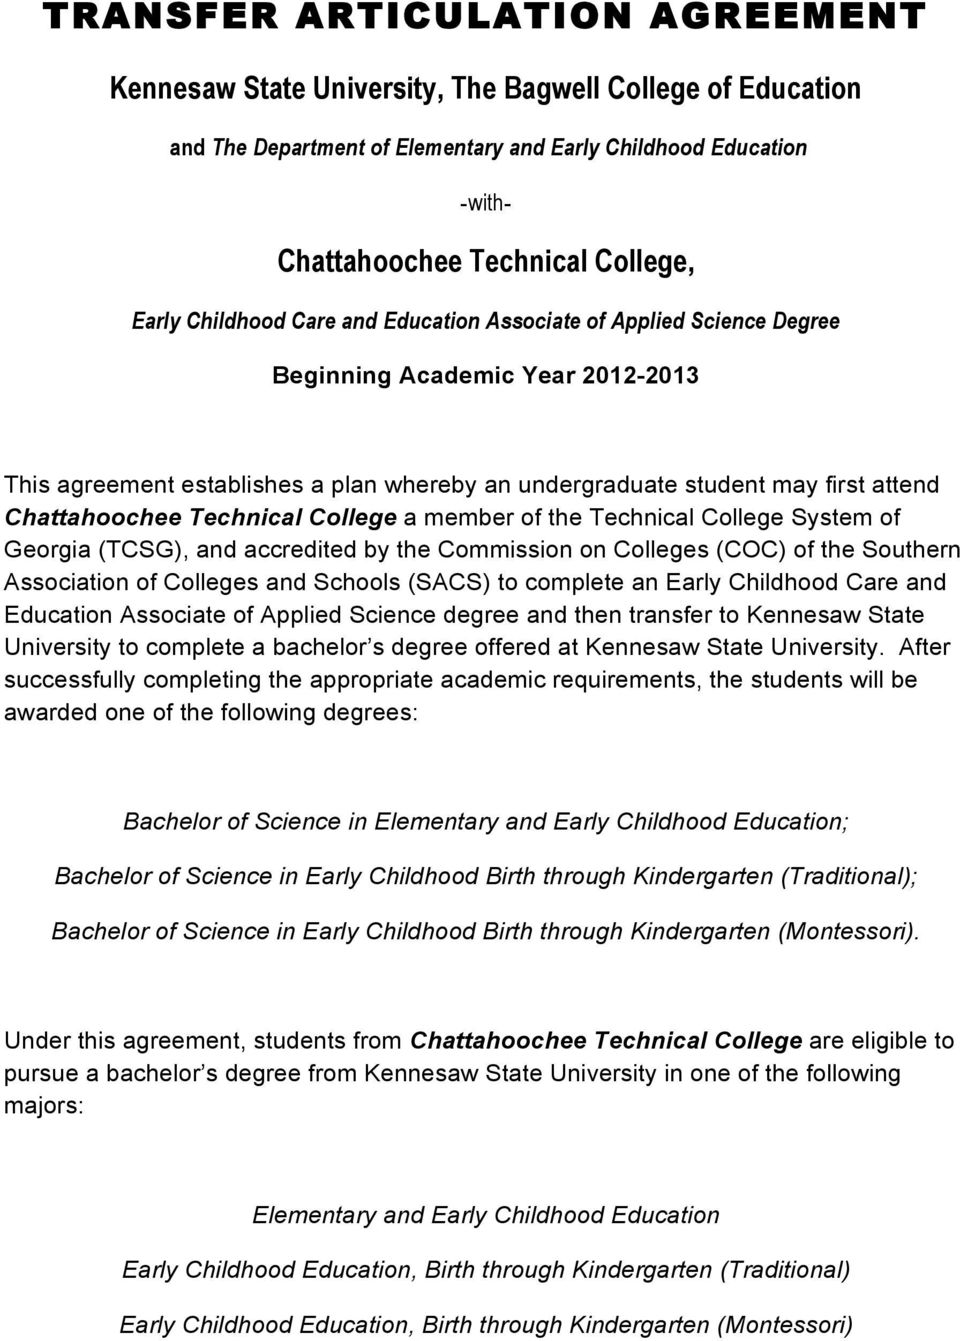 Chattahoochee Technical College a member of the Technical College System of Georgia (TCSG), and accredited by the Commission on Colleges (COC) of the Southern Association of Colleges and Schools